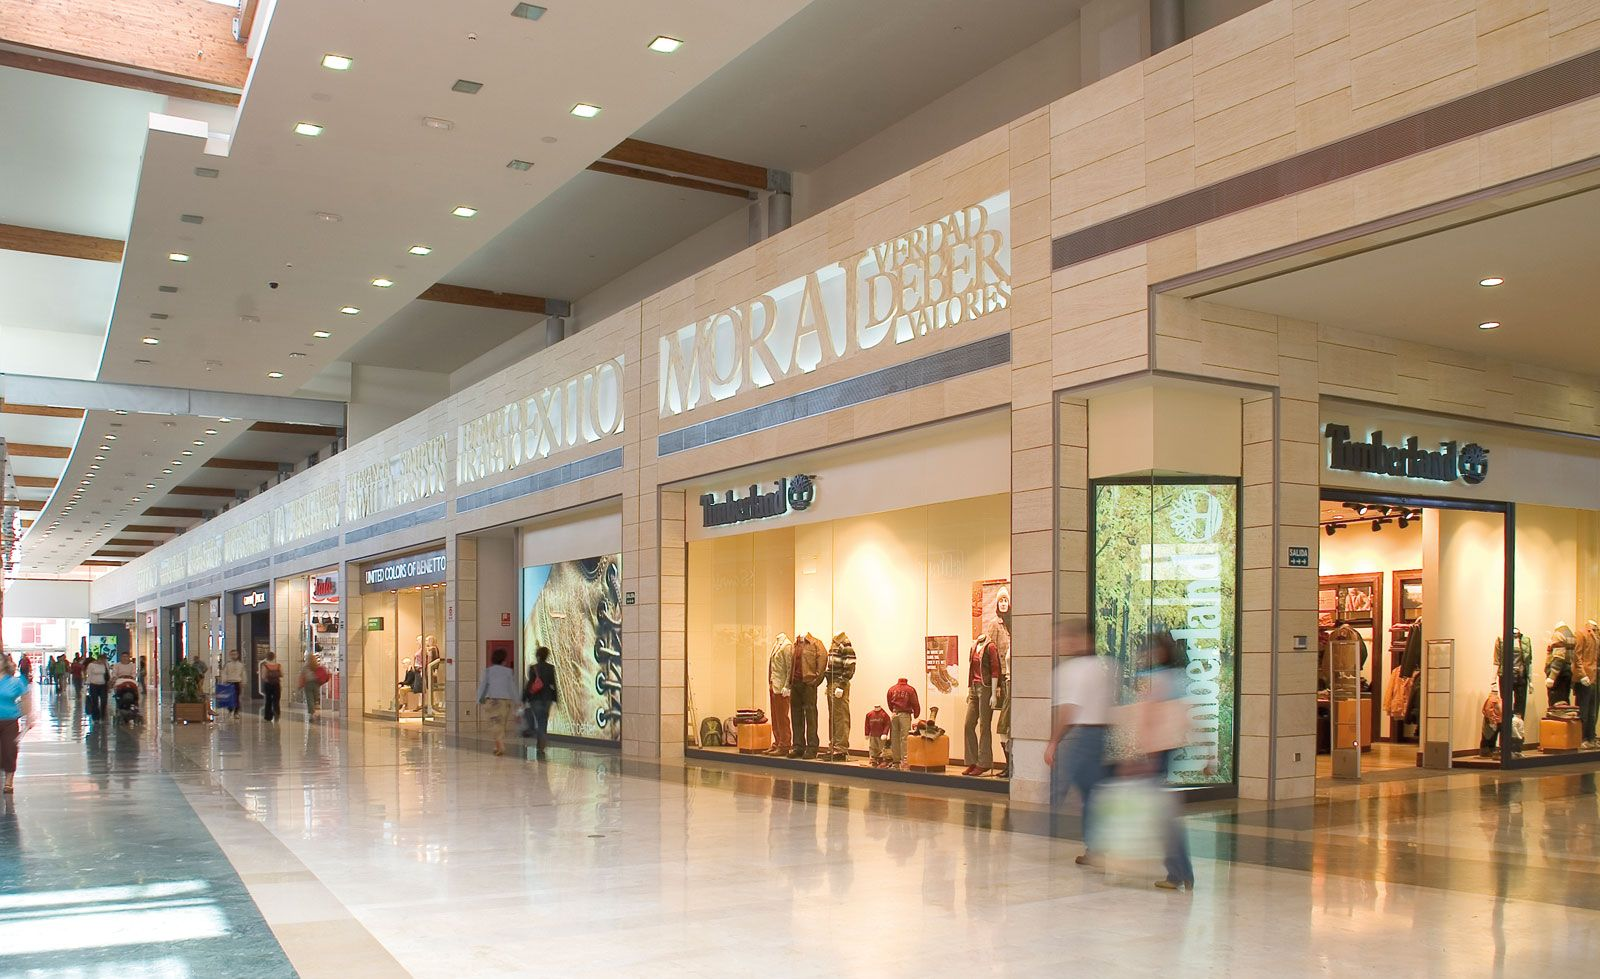 Parquesur madrid spain shopping mall pinterest - Garden center madrid ...